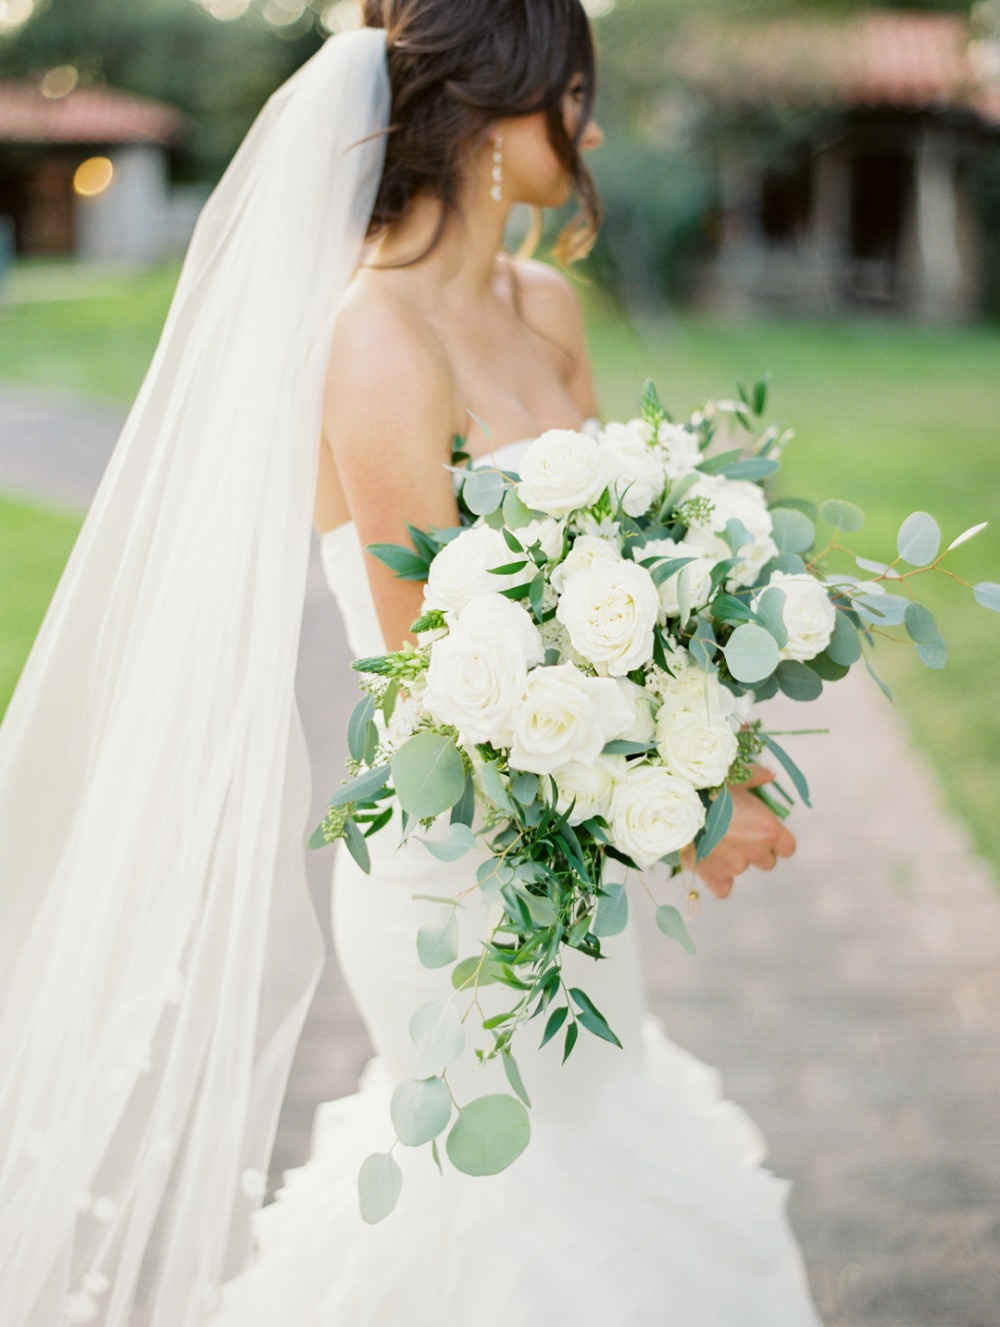 A Classic White and Greenery Wedding with Rustic Charm #whiteweddingflowers